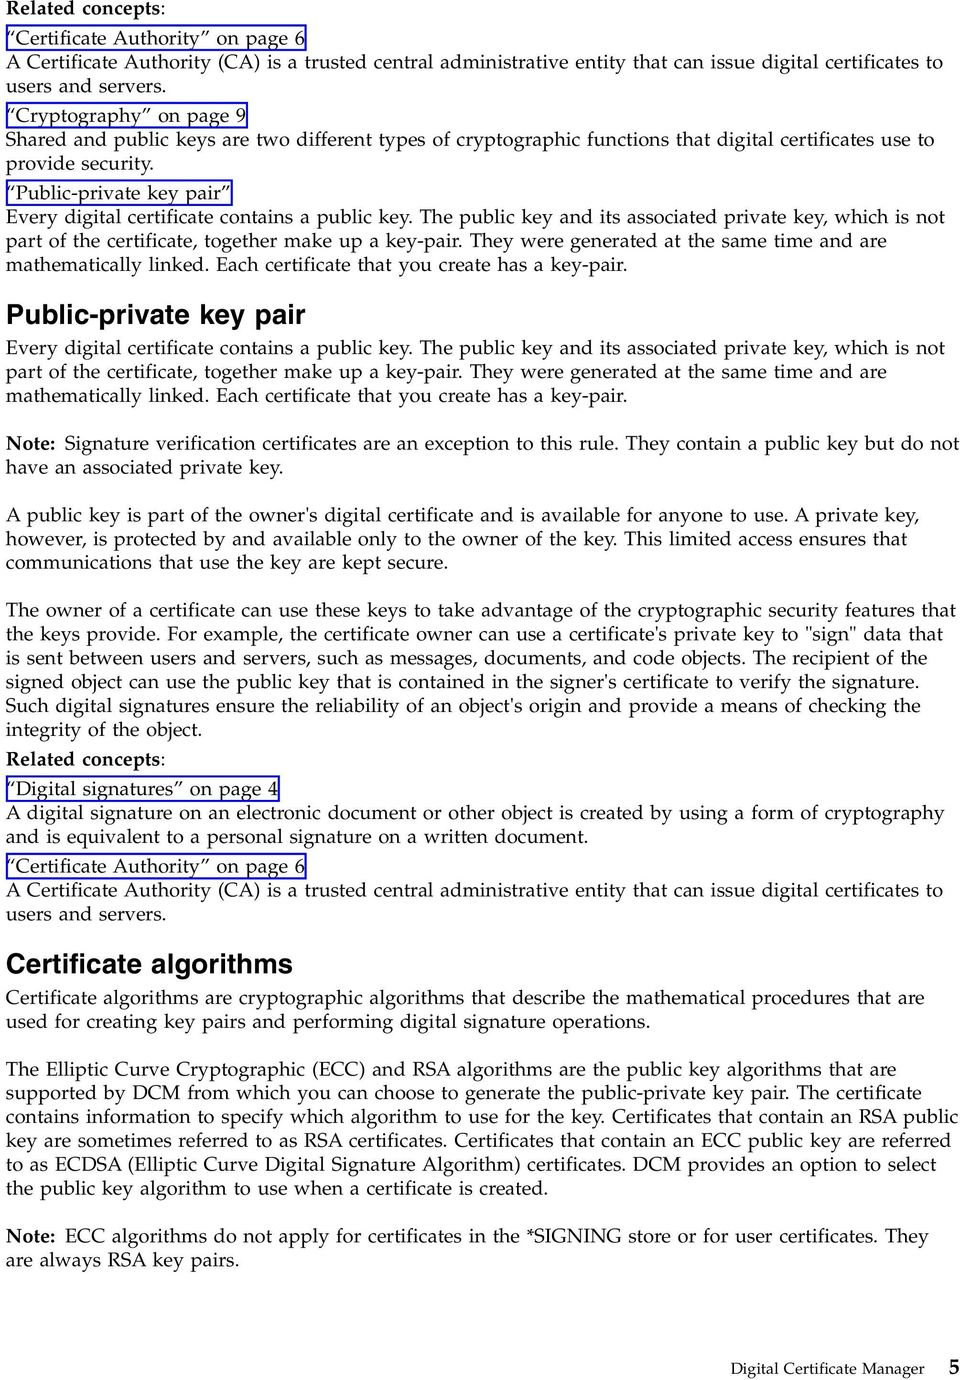 Public-private key pair Every digital certificate contains a public key. The public key and its associated private key, which is not part of the certificate, together make up a key-pair.